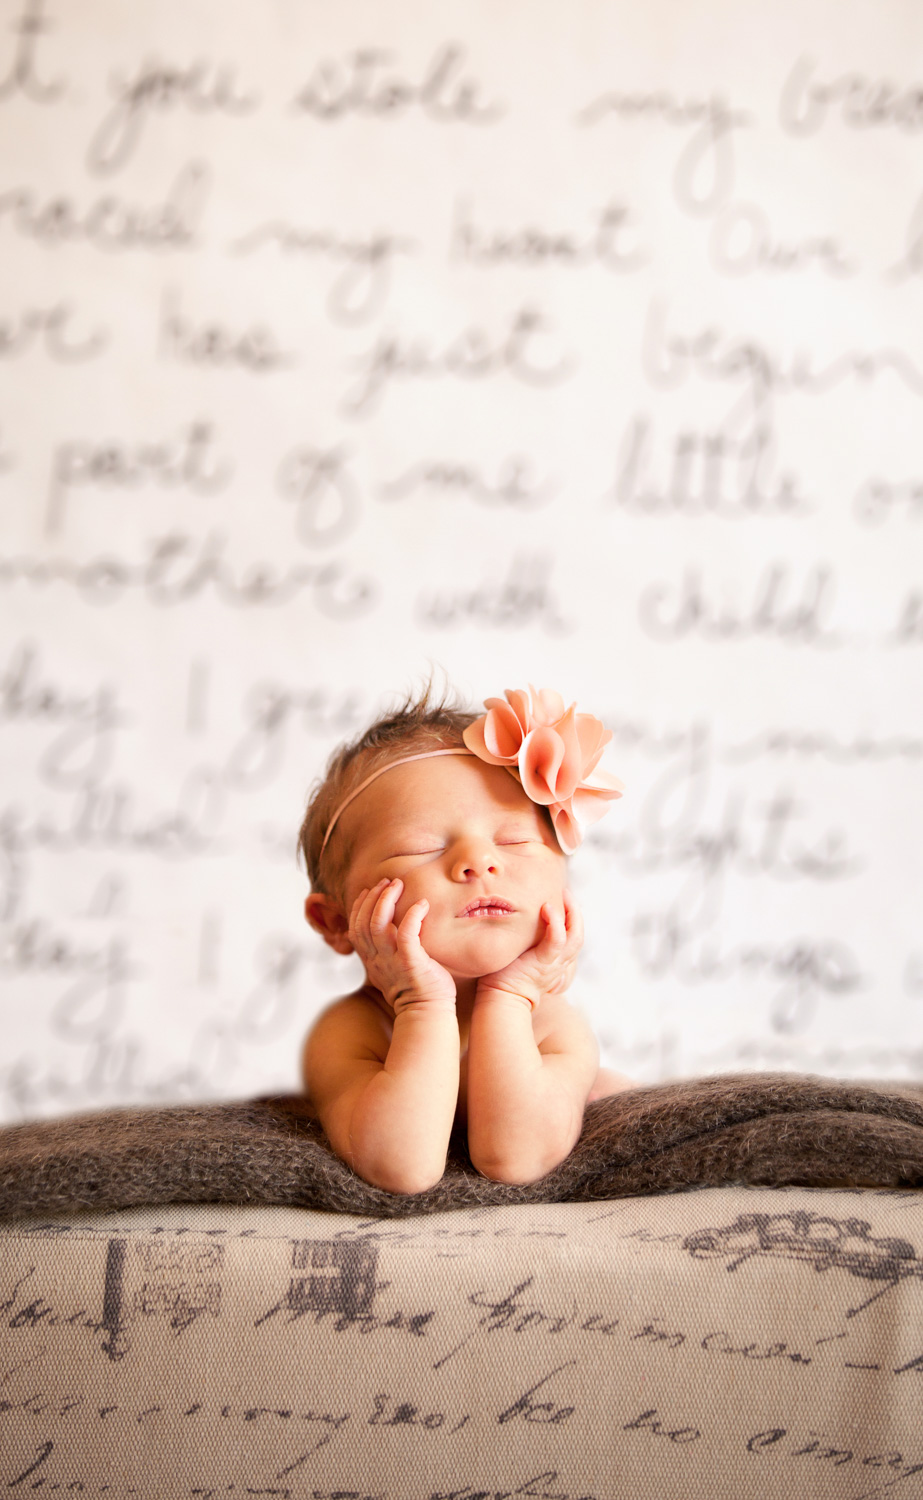 newborn-photography-posed-baby-girl-arizona.jpg